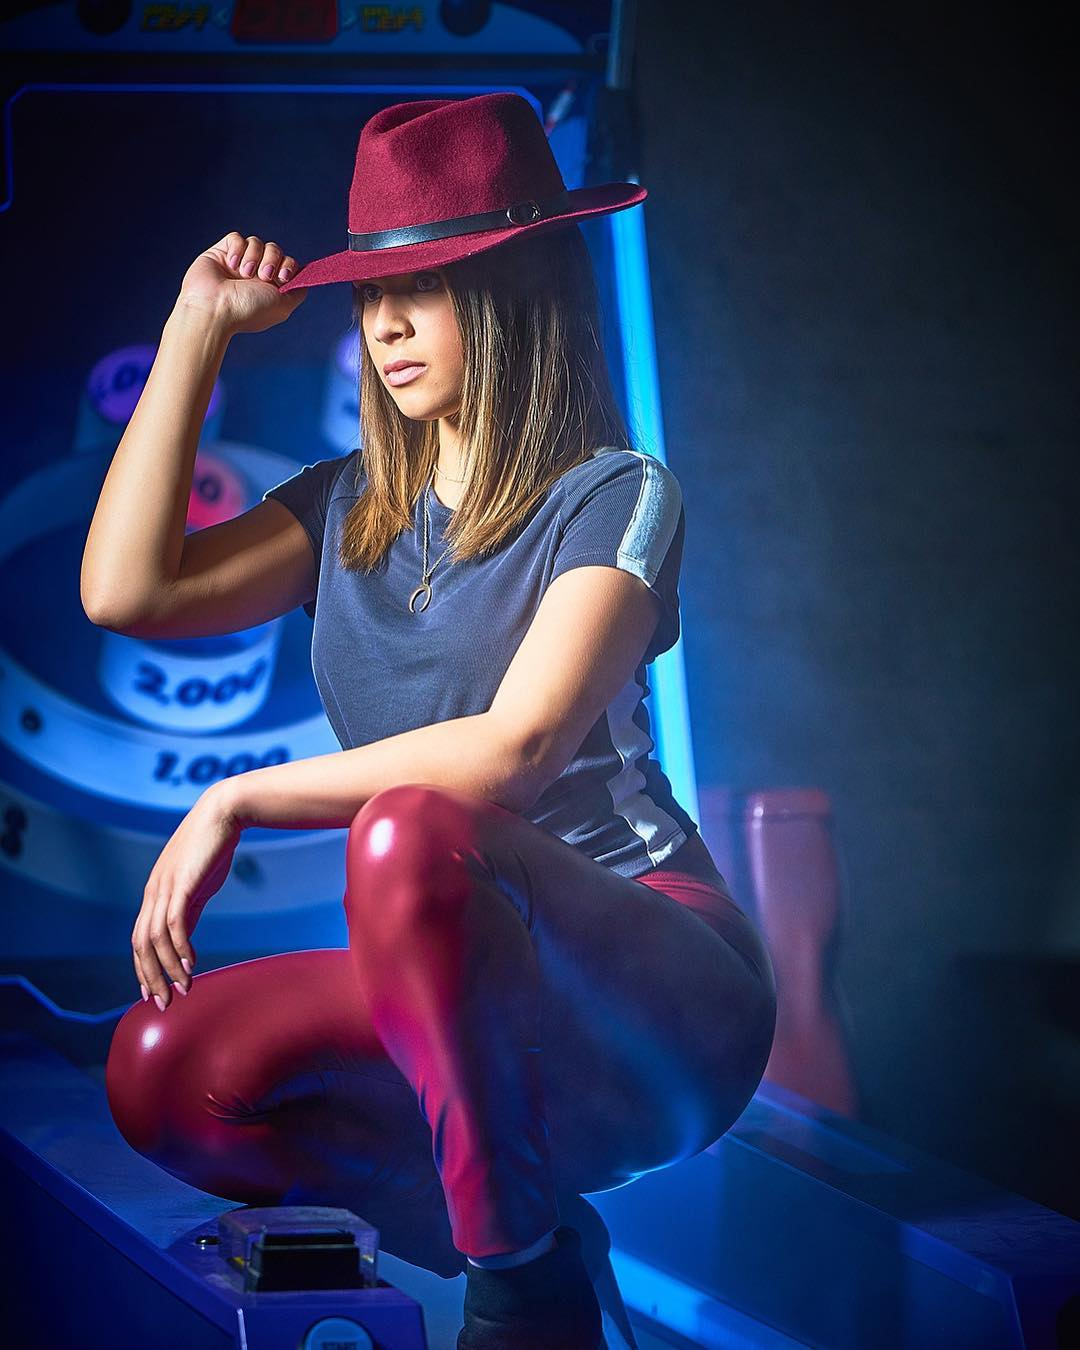 Neon glamour photo of a woman in red leather pants and hat